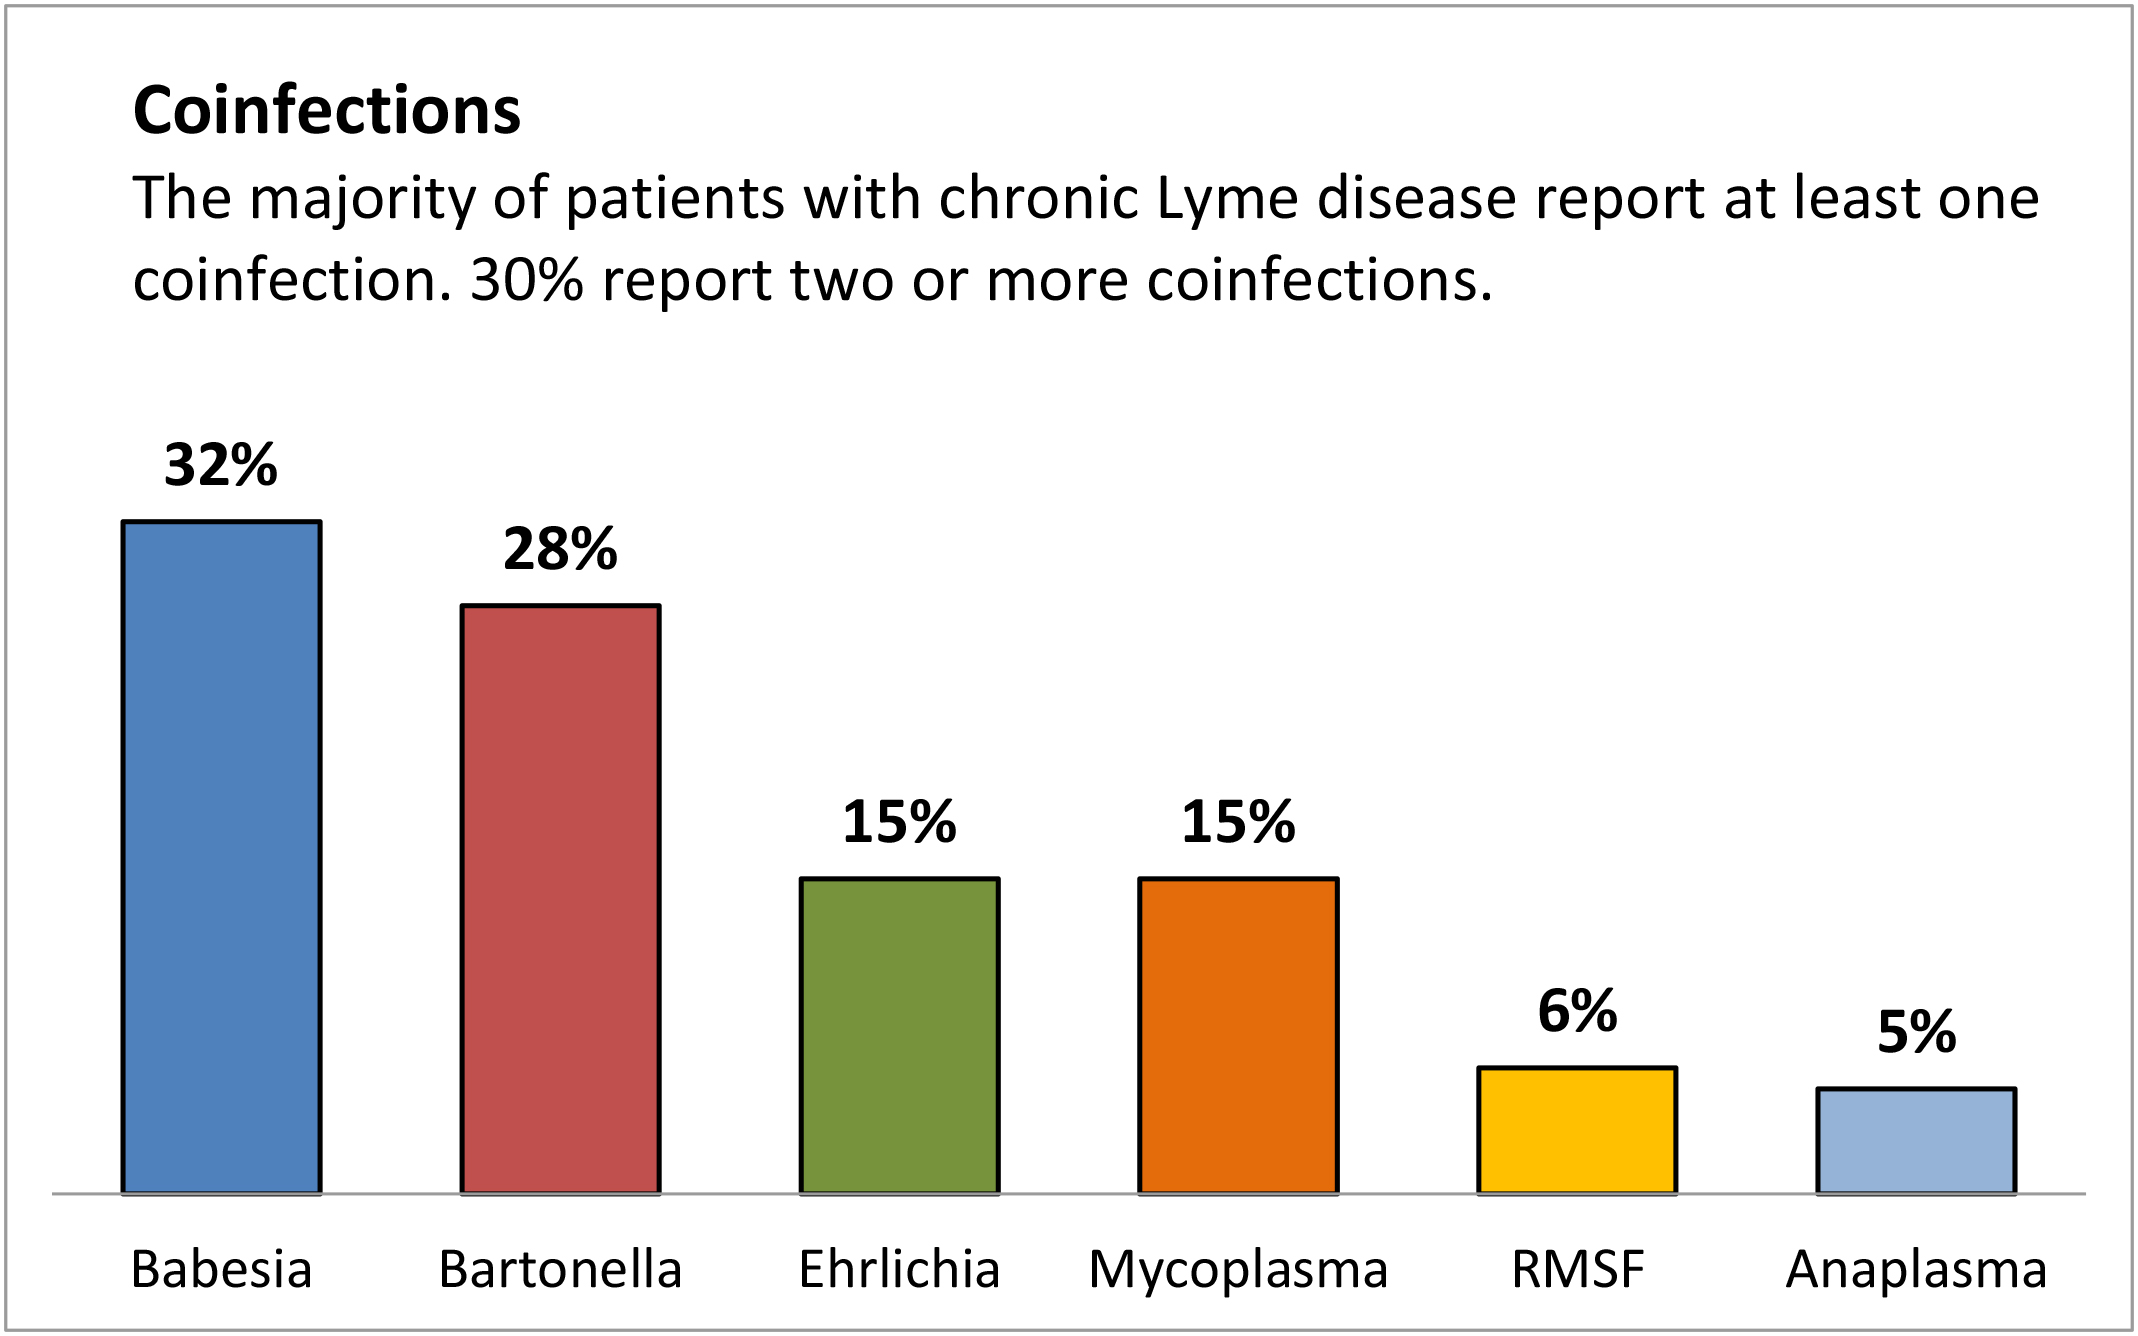 rate of co-infections in patients with Lyme disease